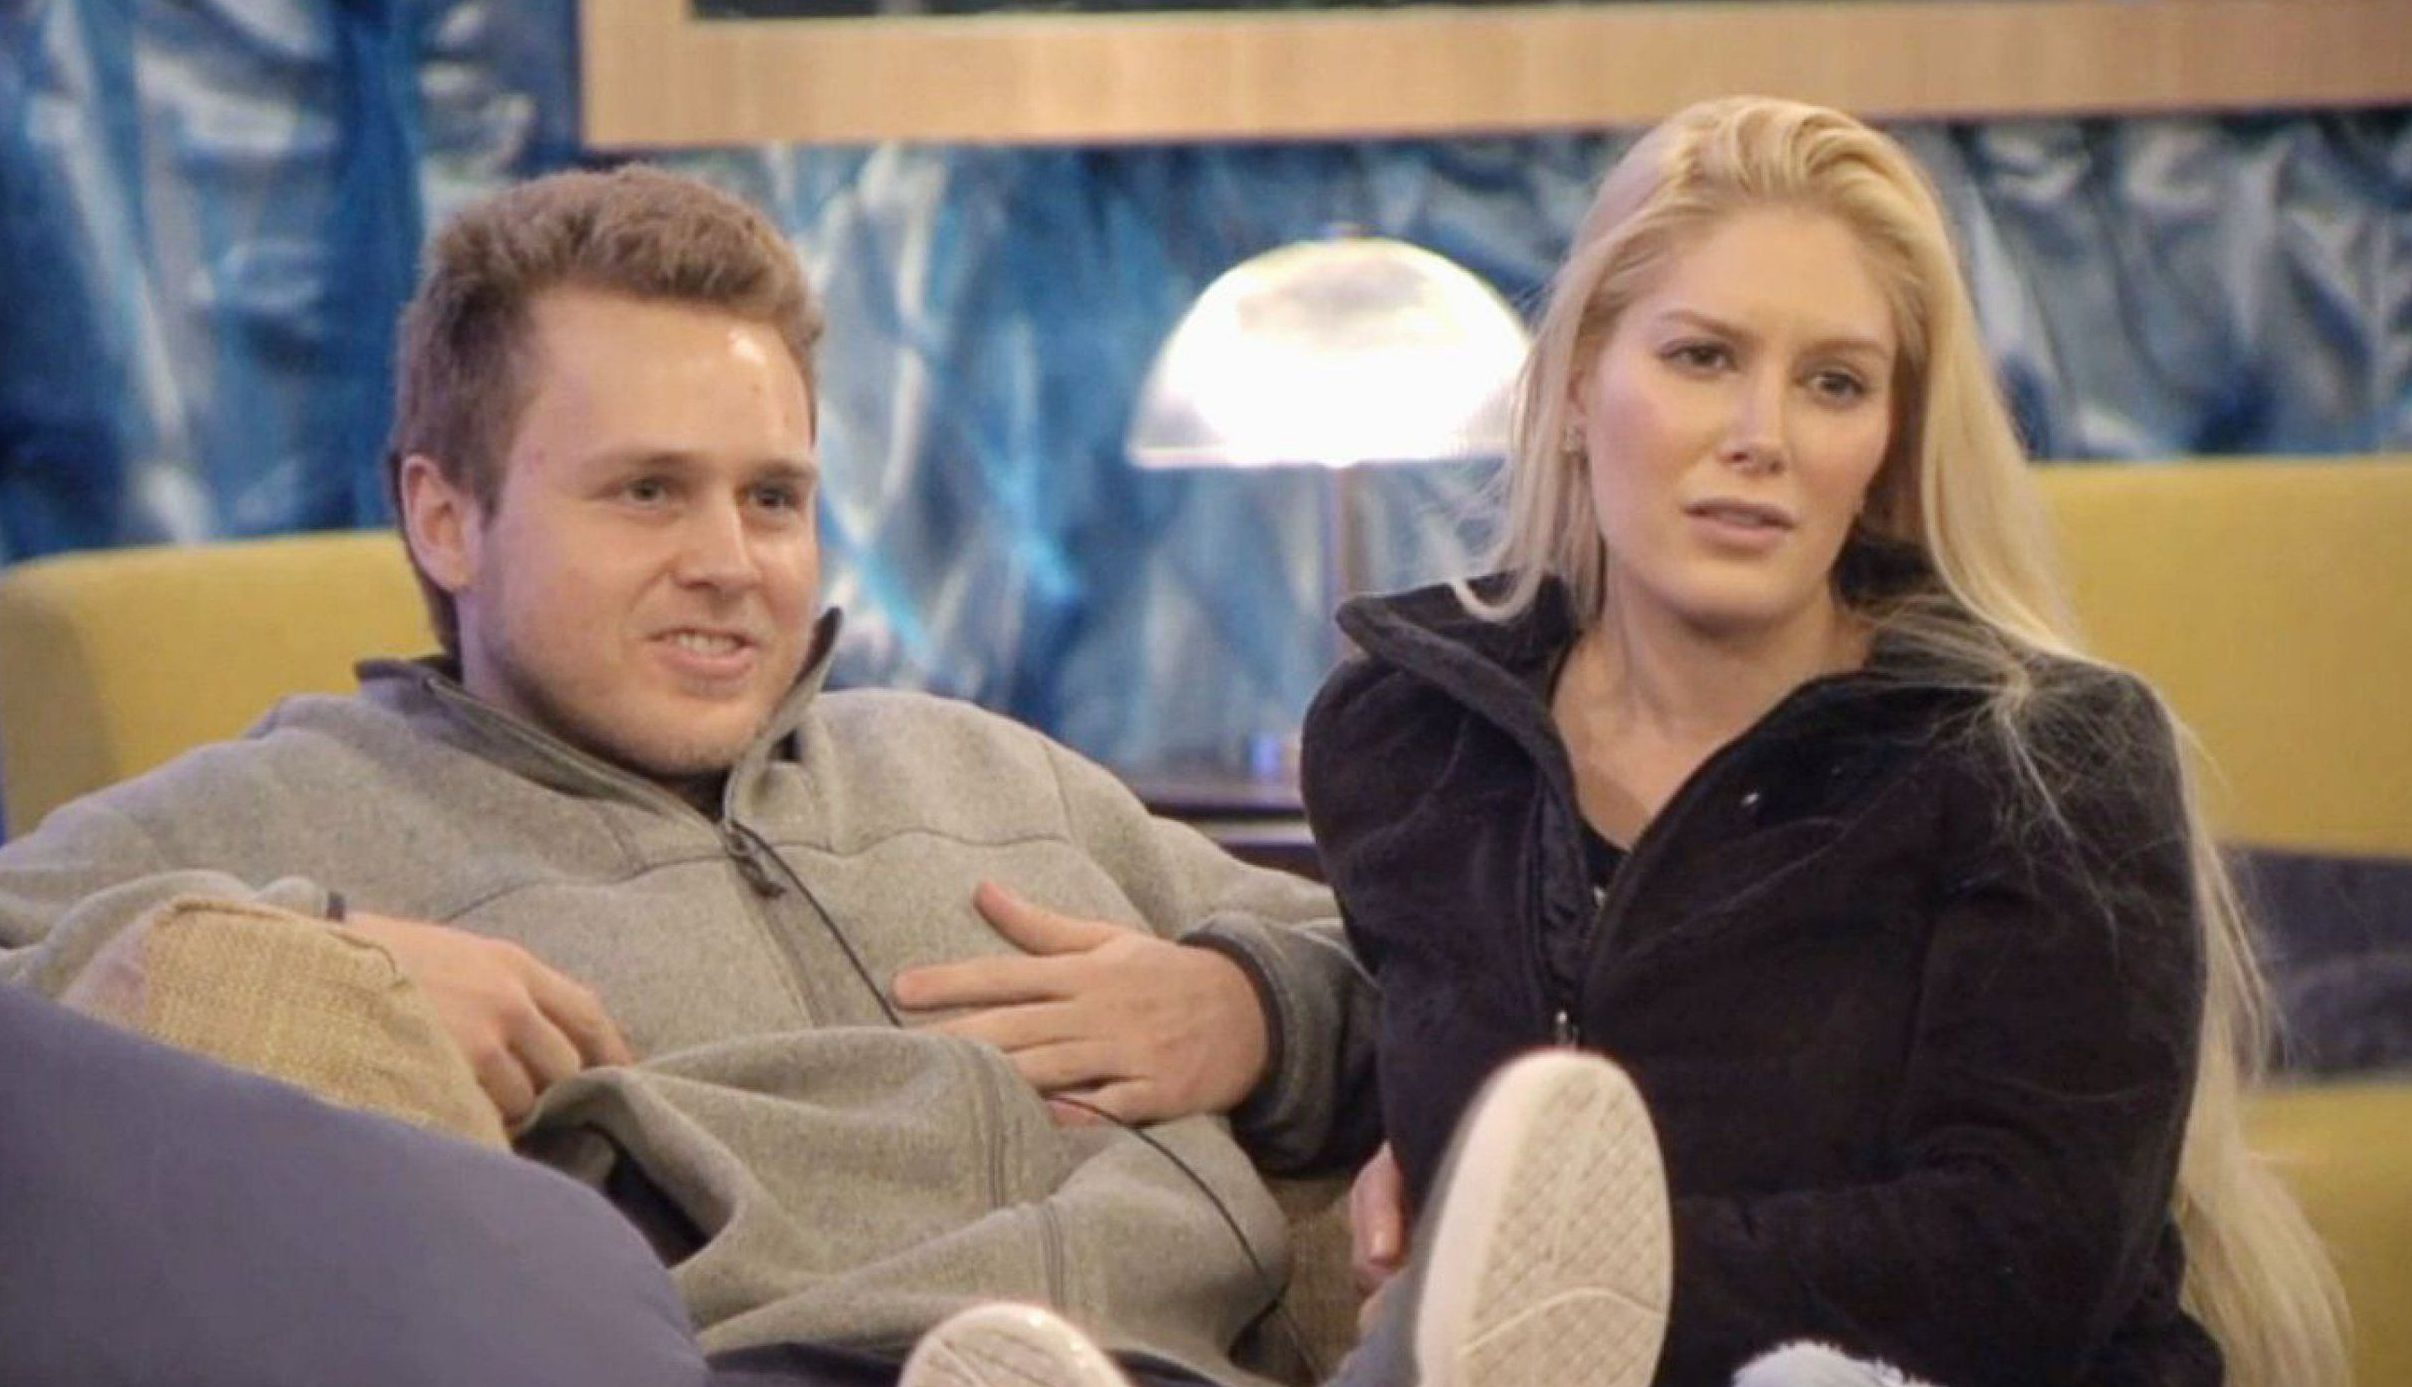 Spencer and Heidi Pratt are reportedly appearing in Celebrity Big Brother 2017 (Picture: Rex/Shutterstock)